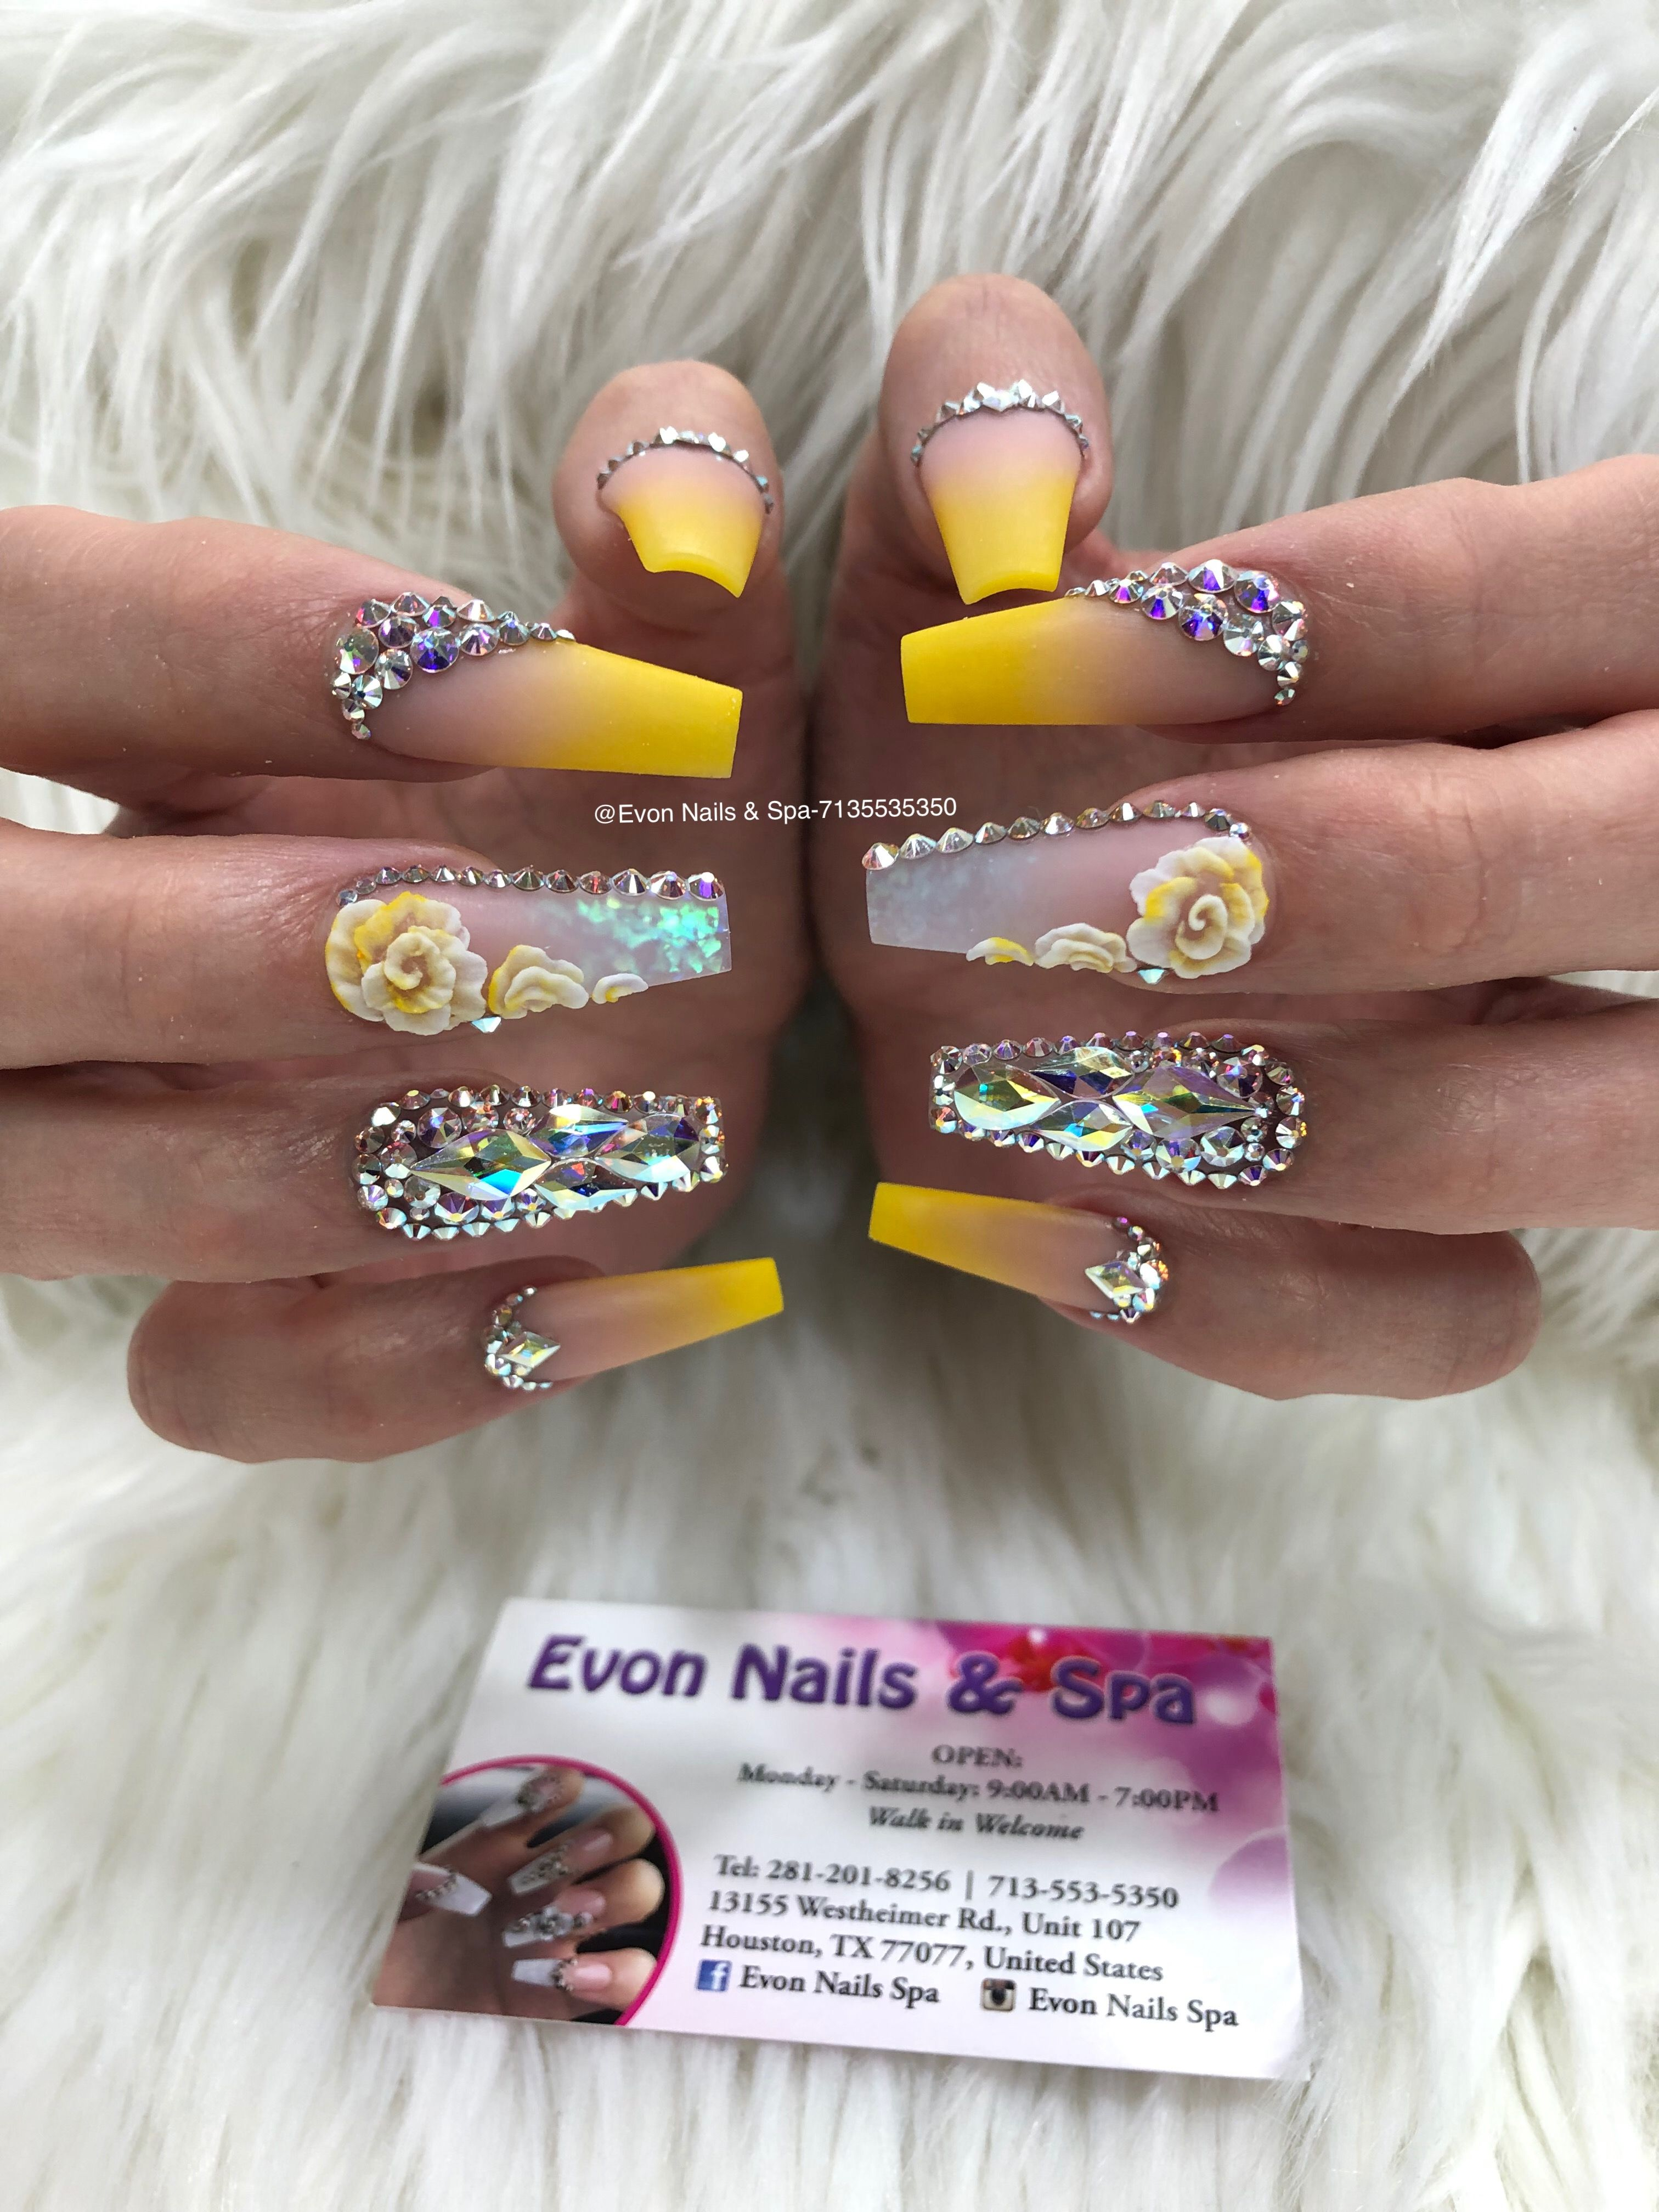 Pin By Evon Nails Spa On Evon Nails Spa Pink Glitter Nails